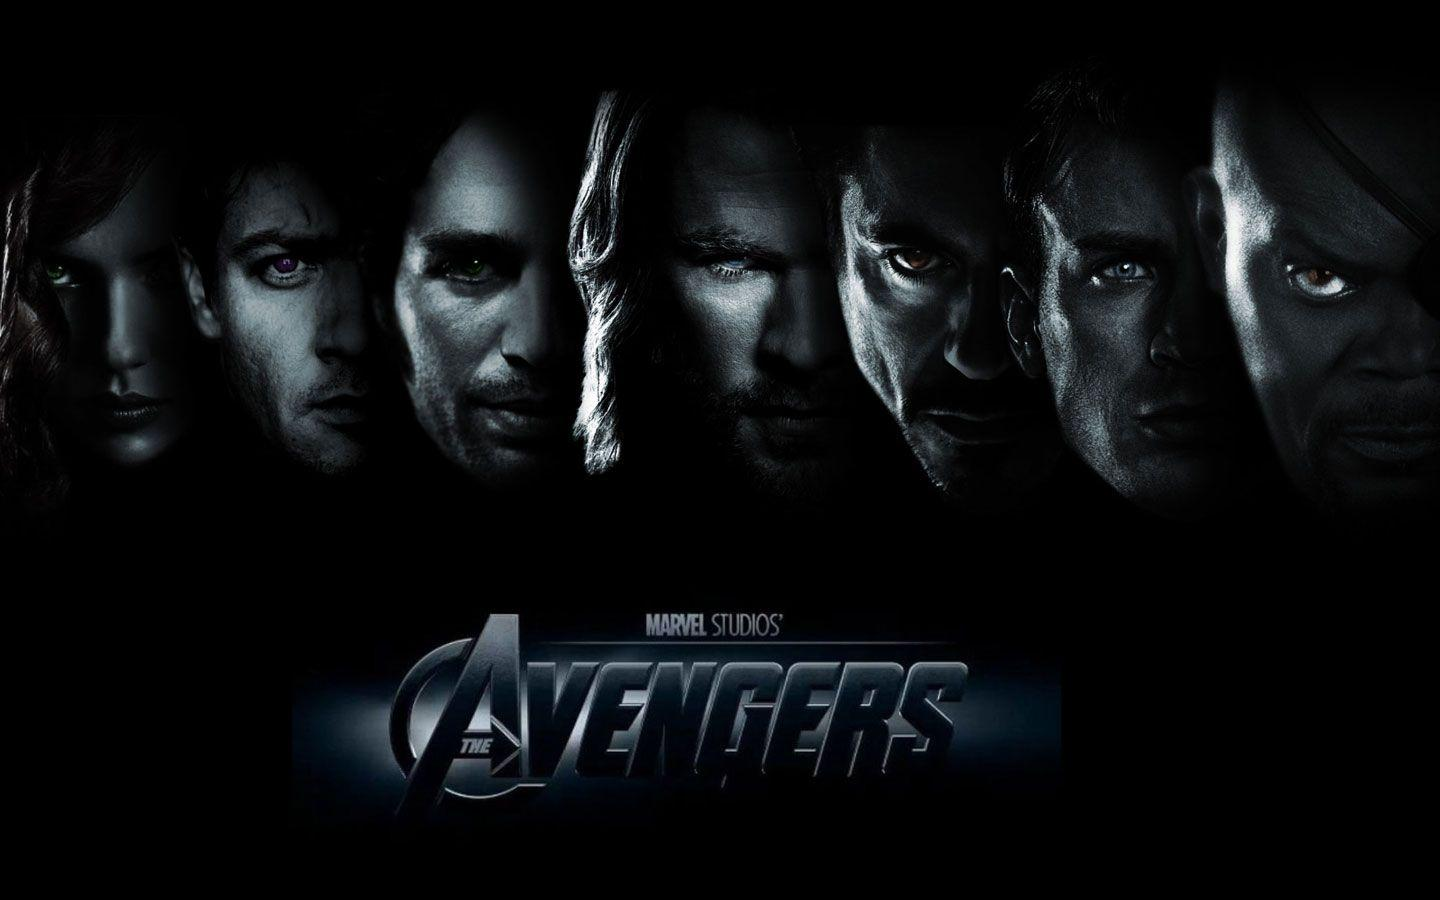 The Avengers Wallpapers HD For Windows 7